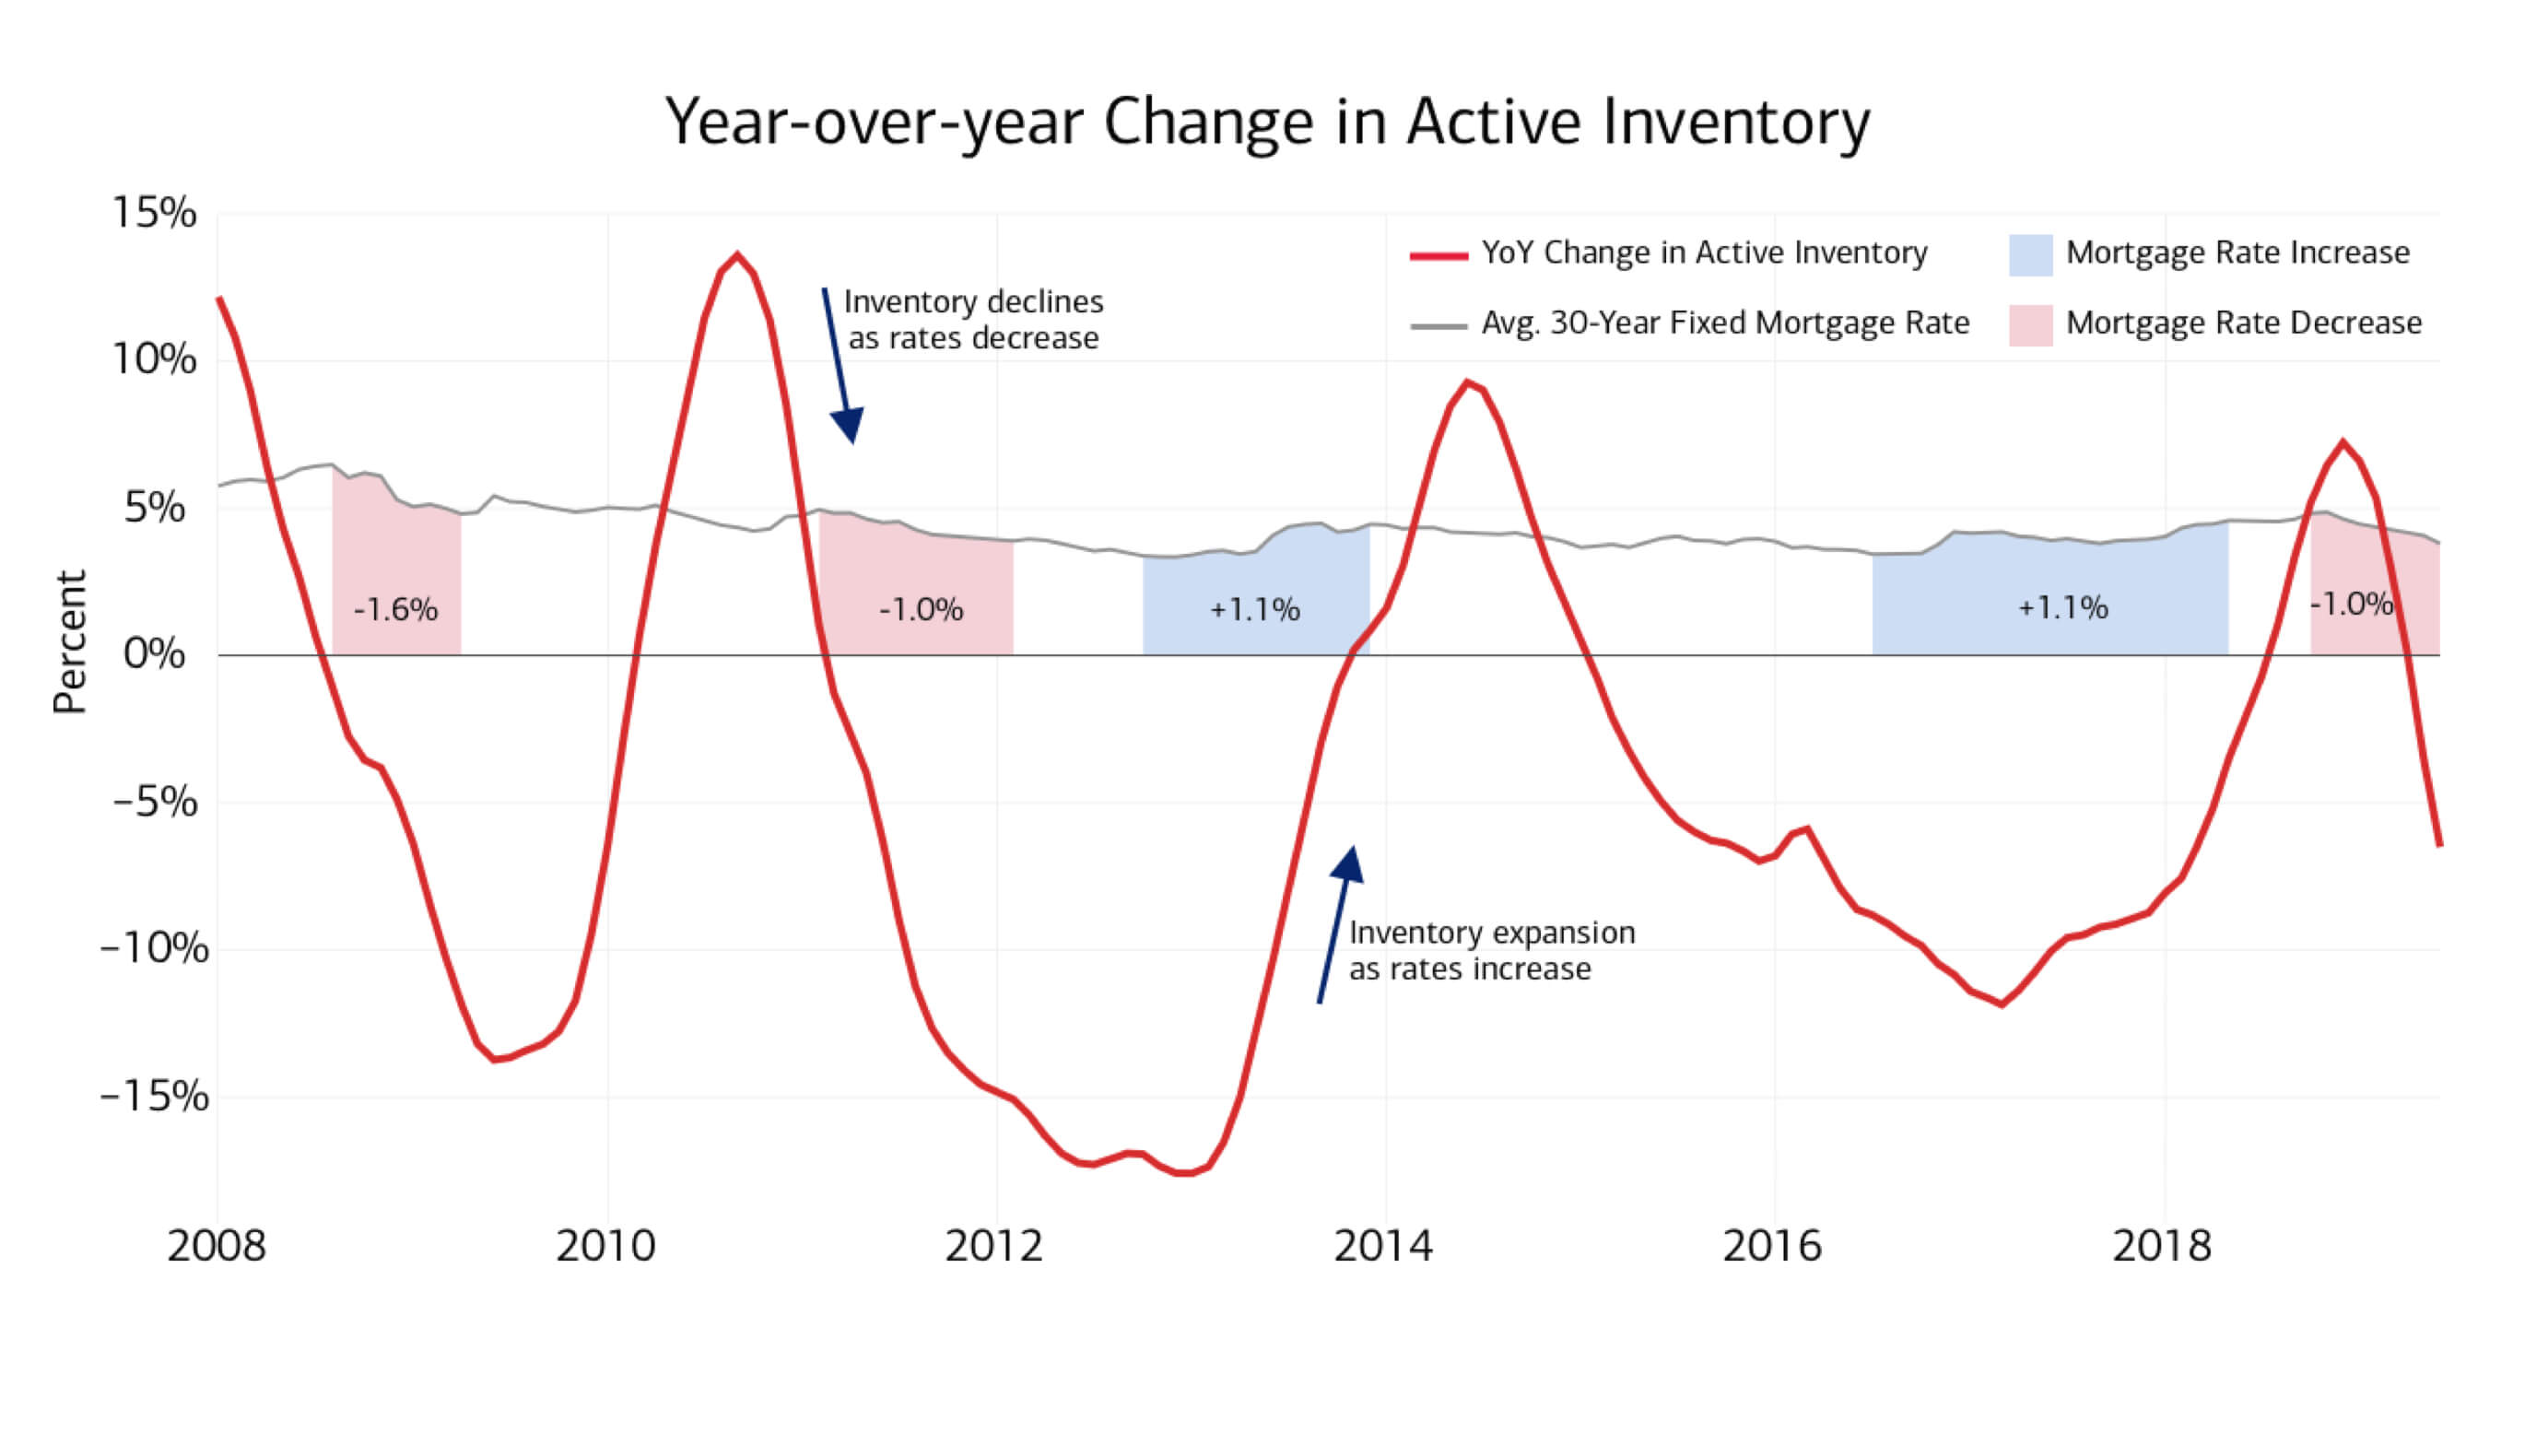 During periods when the average 30-year fixed mortgage rate is decreasing, the amount of active inventory typically decreases. During periods when the average 30-year fixed mortgage rate is increasing, the amount of active inventory typically increases.